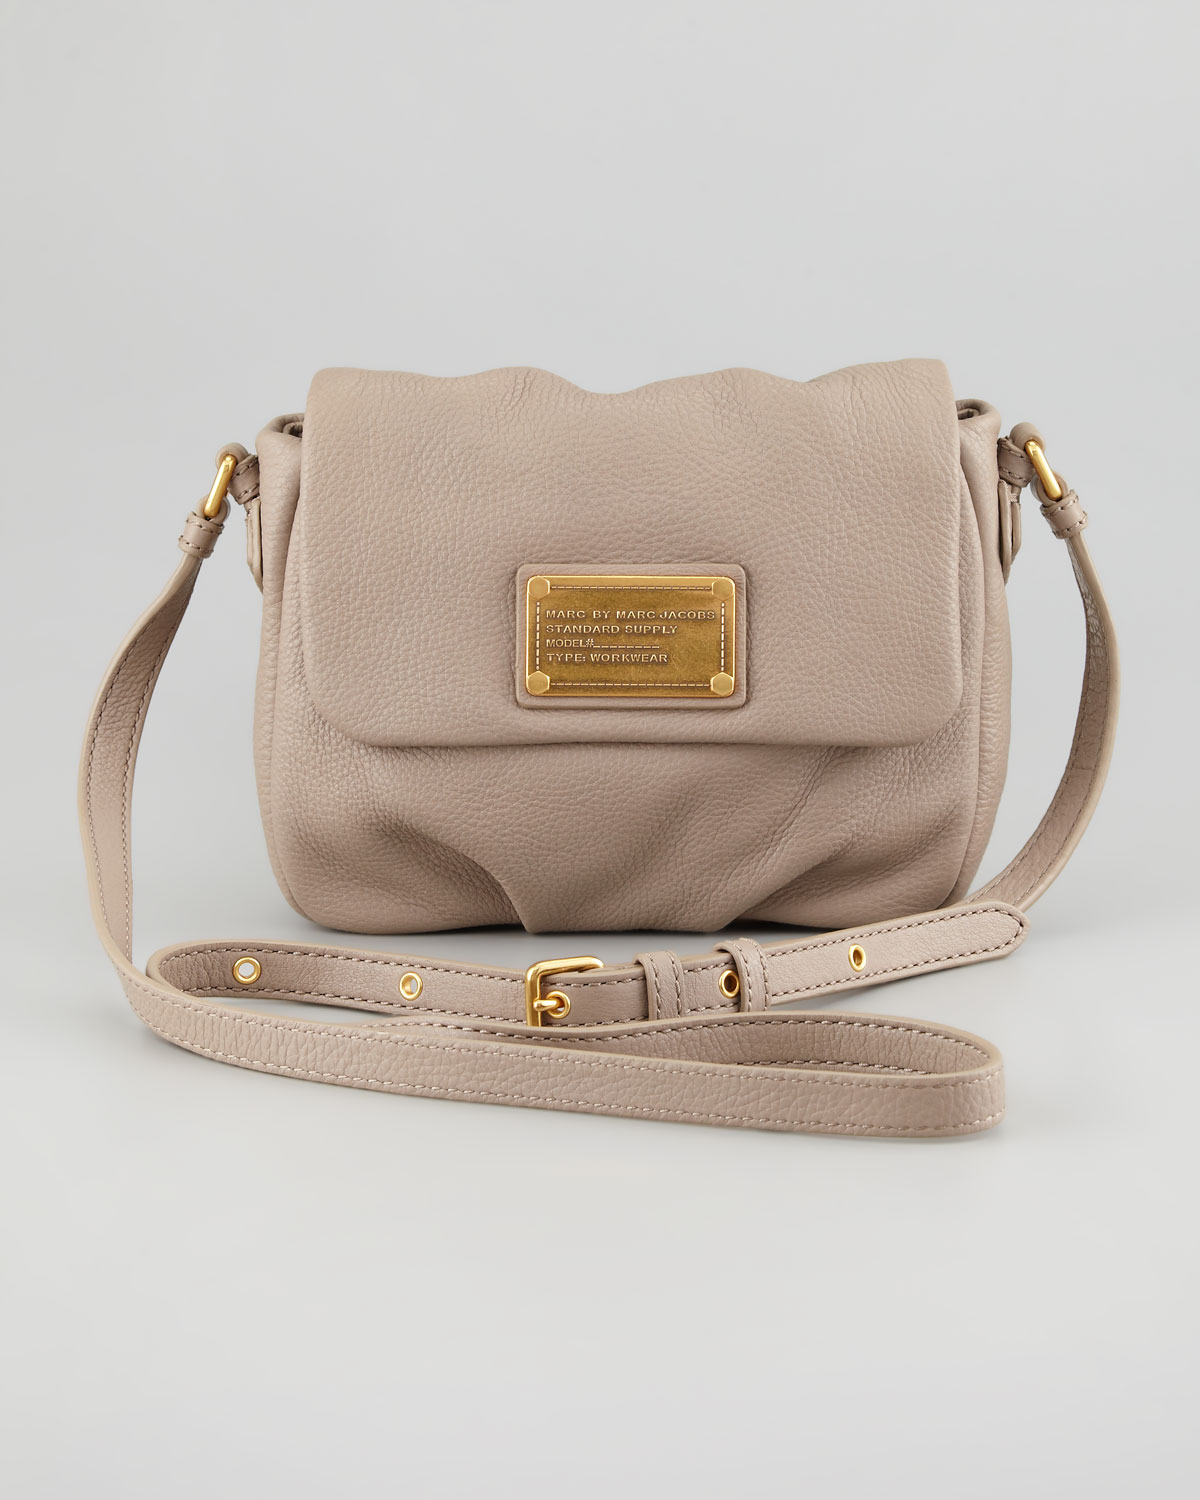 36eda90f7754 Lyst - Marc By Marc Jacobs Classic Q Isabelle Crossbody Bag in Gray